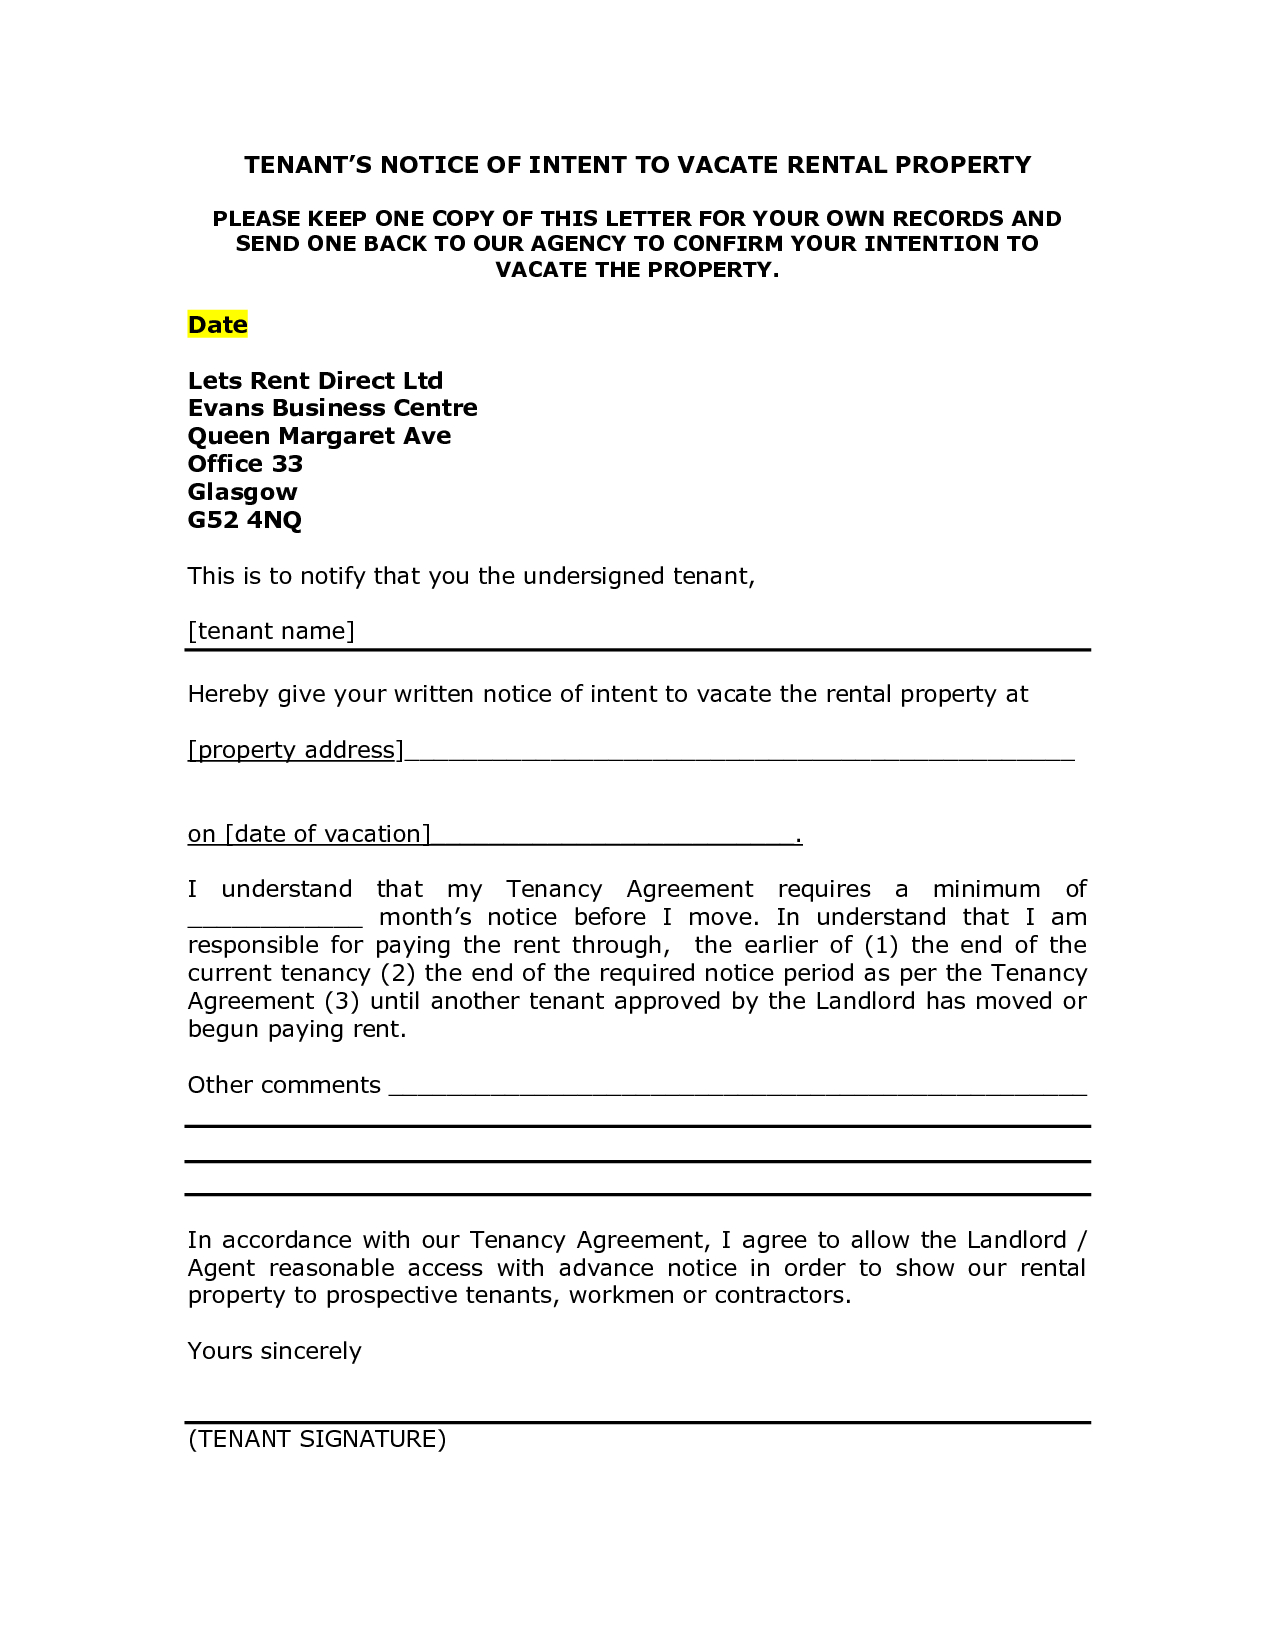 Notice to Vacate Letter to Tenant Template - Notice Intent toe Rental Property Sample Letter Picture Ideas